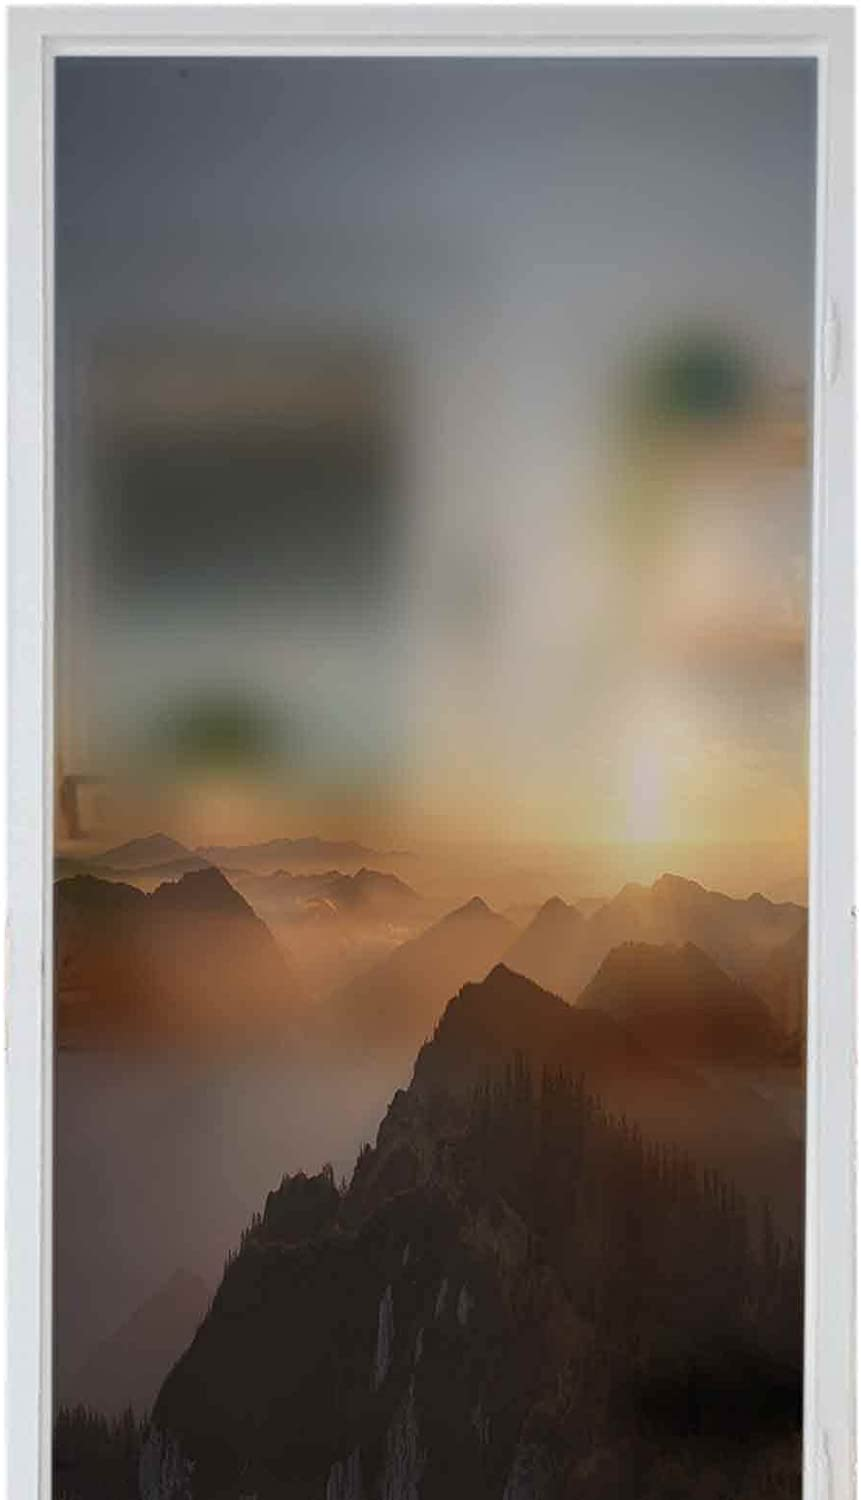 LCGGDB Frosted Glass Stickers Popular product Static The Cover S Classic Beautiful Cling